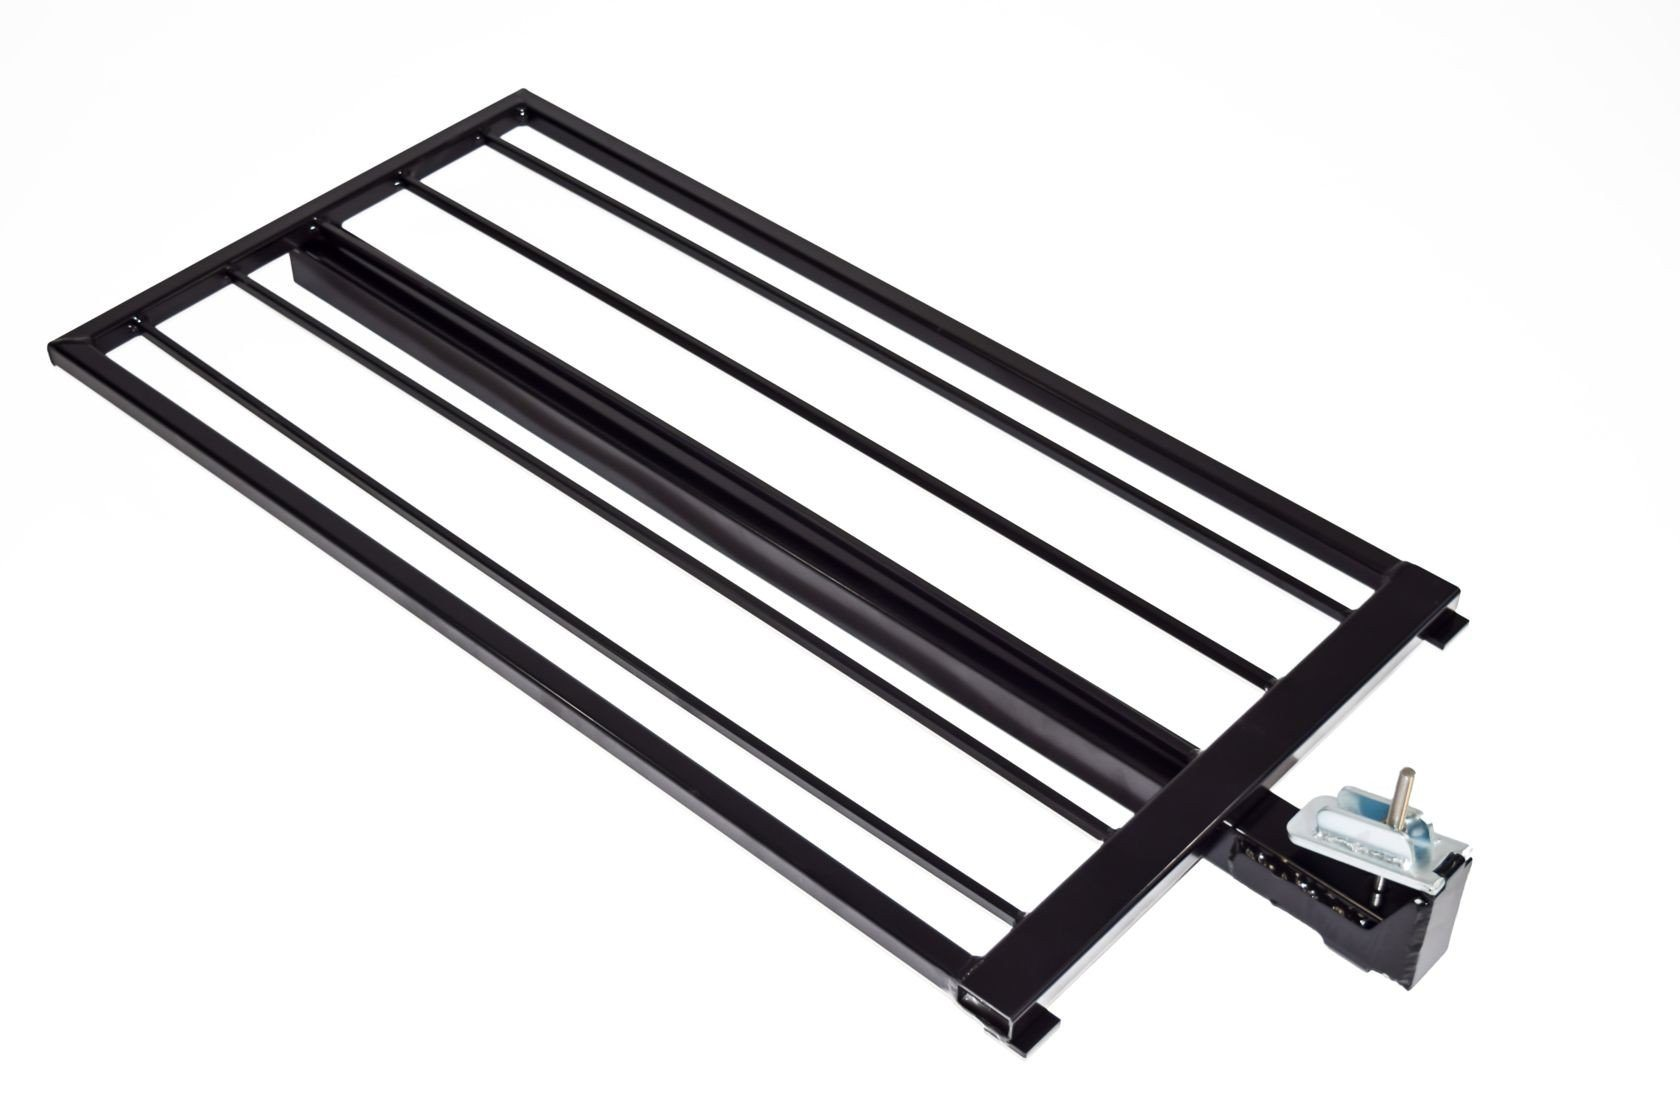 Aluminum Guardrail Frame (Code compliant for public use) Black Finish 2'x42